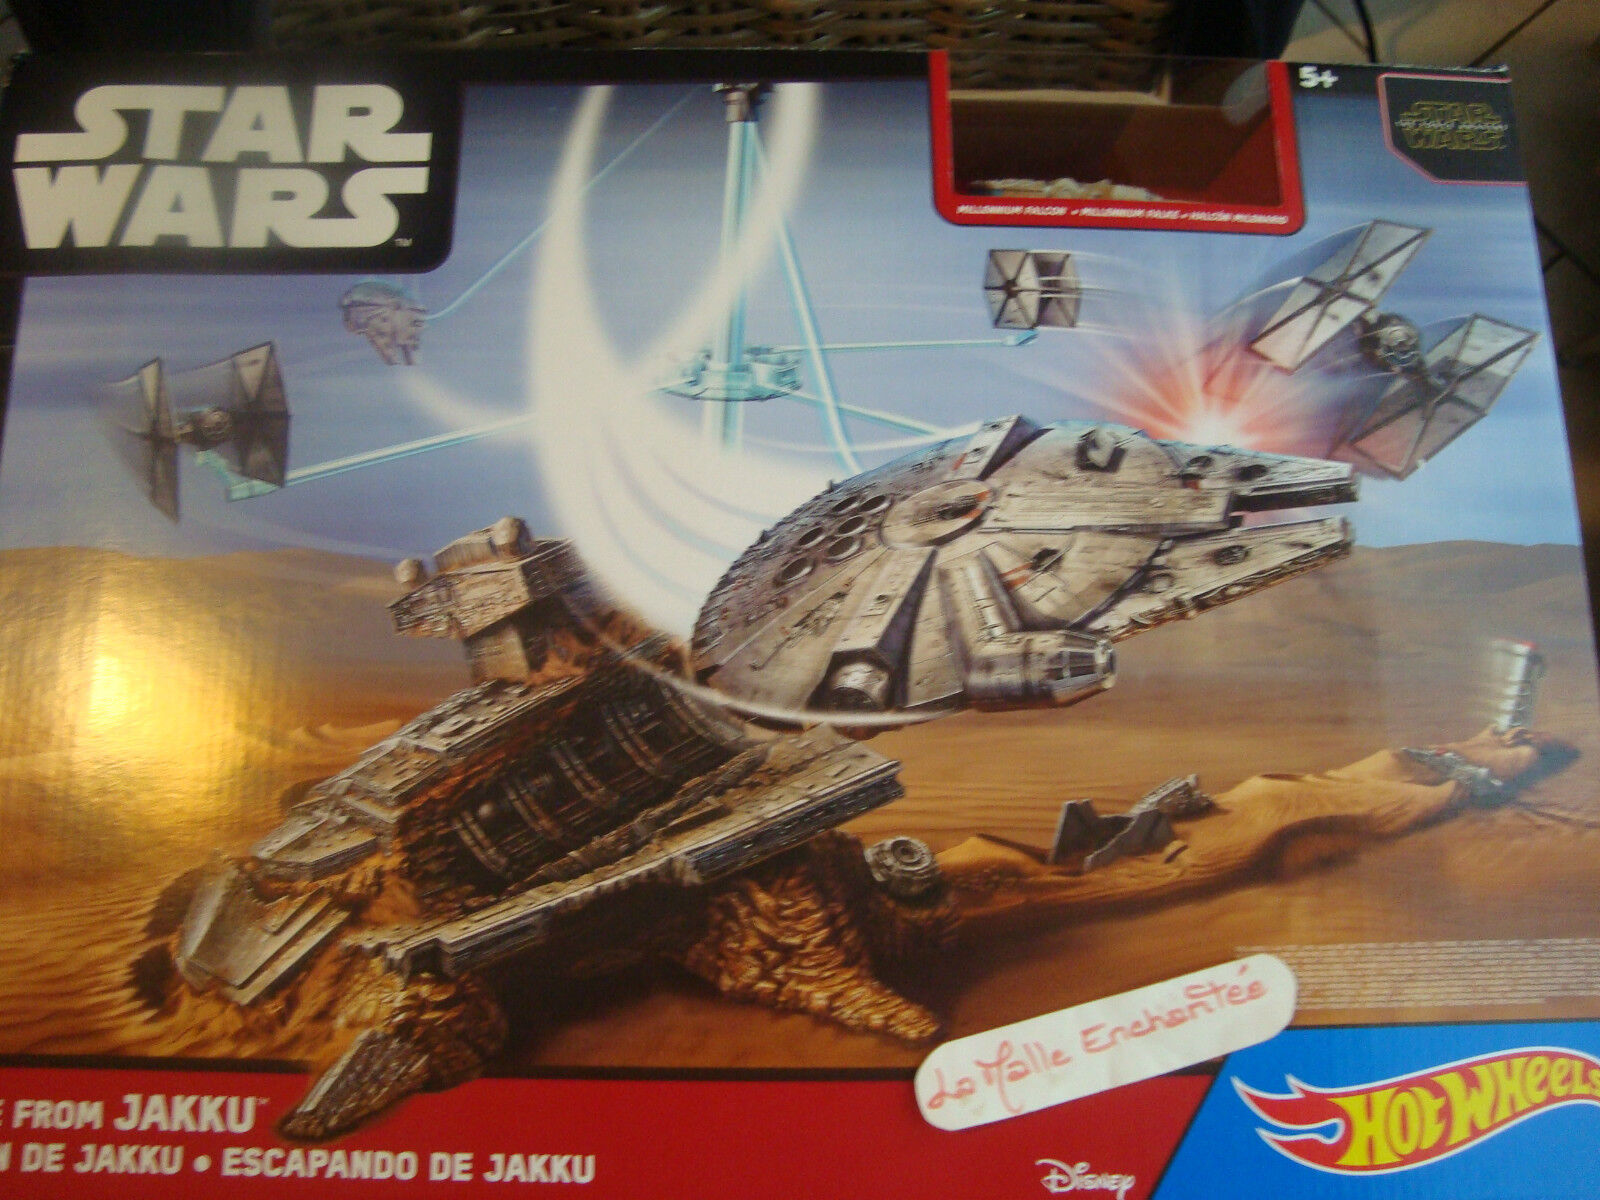 Playset Star Wars Hot Wheels  Escape of Jakku Esacape from Jaccu Nib